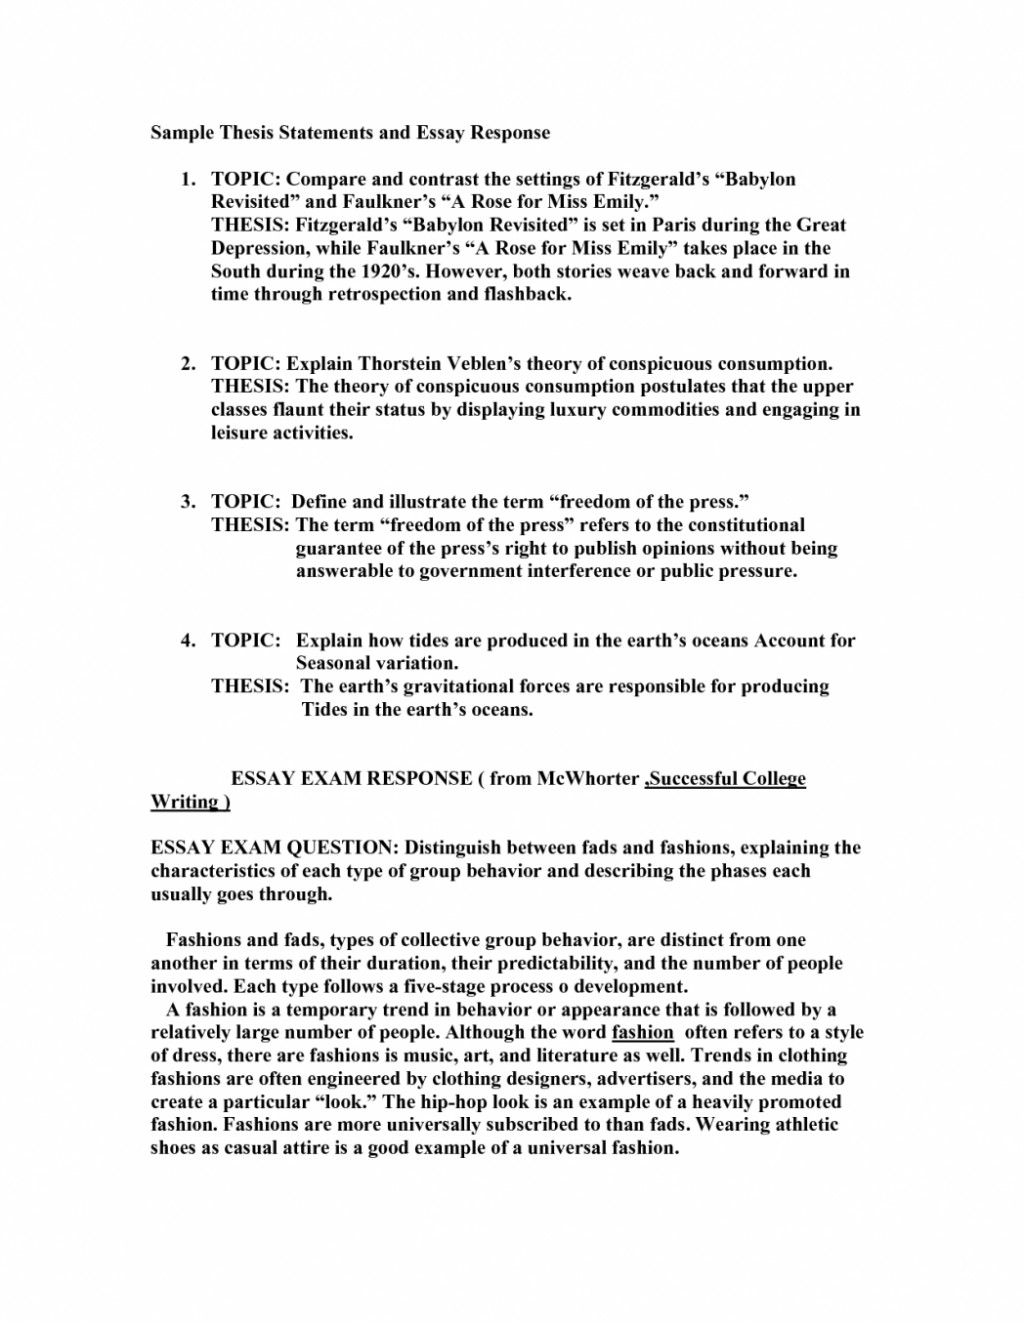 023 Thesis Statement Essay Example Of In An How To Write For About Yourself 6na1p Argumentative Step By Expository High School Ppt Informative Analysis Pdf 1048x1356 Frightening A Do You Large